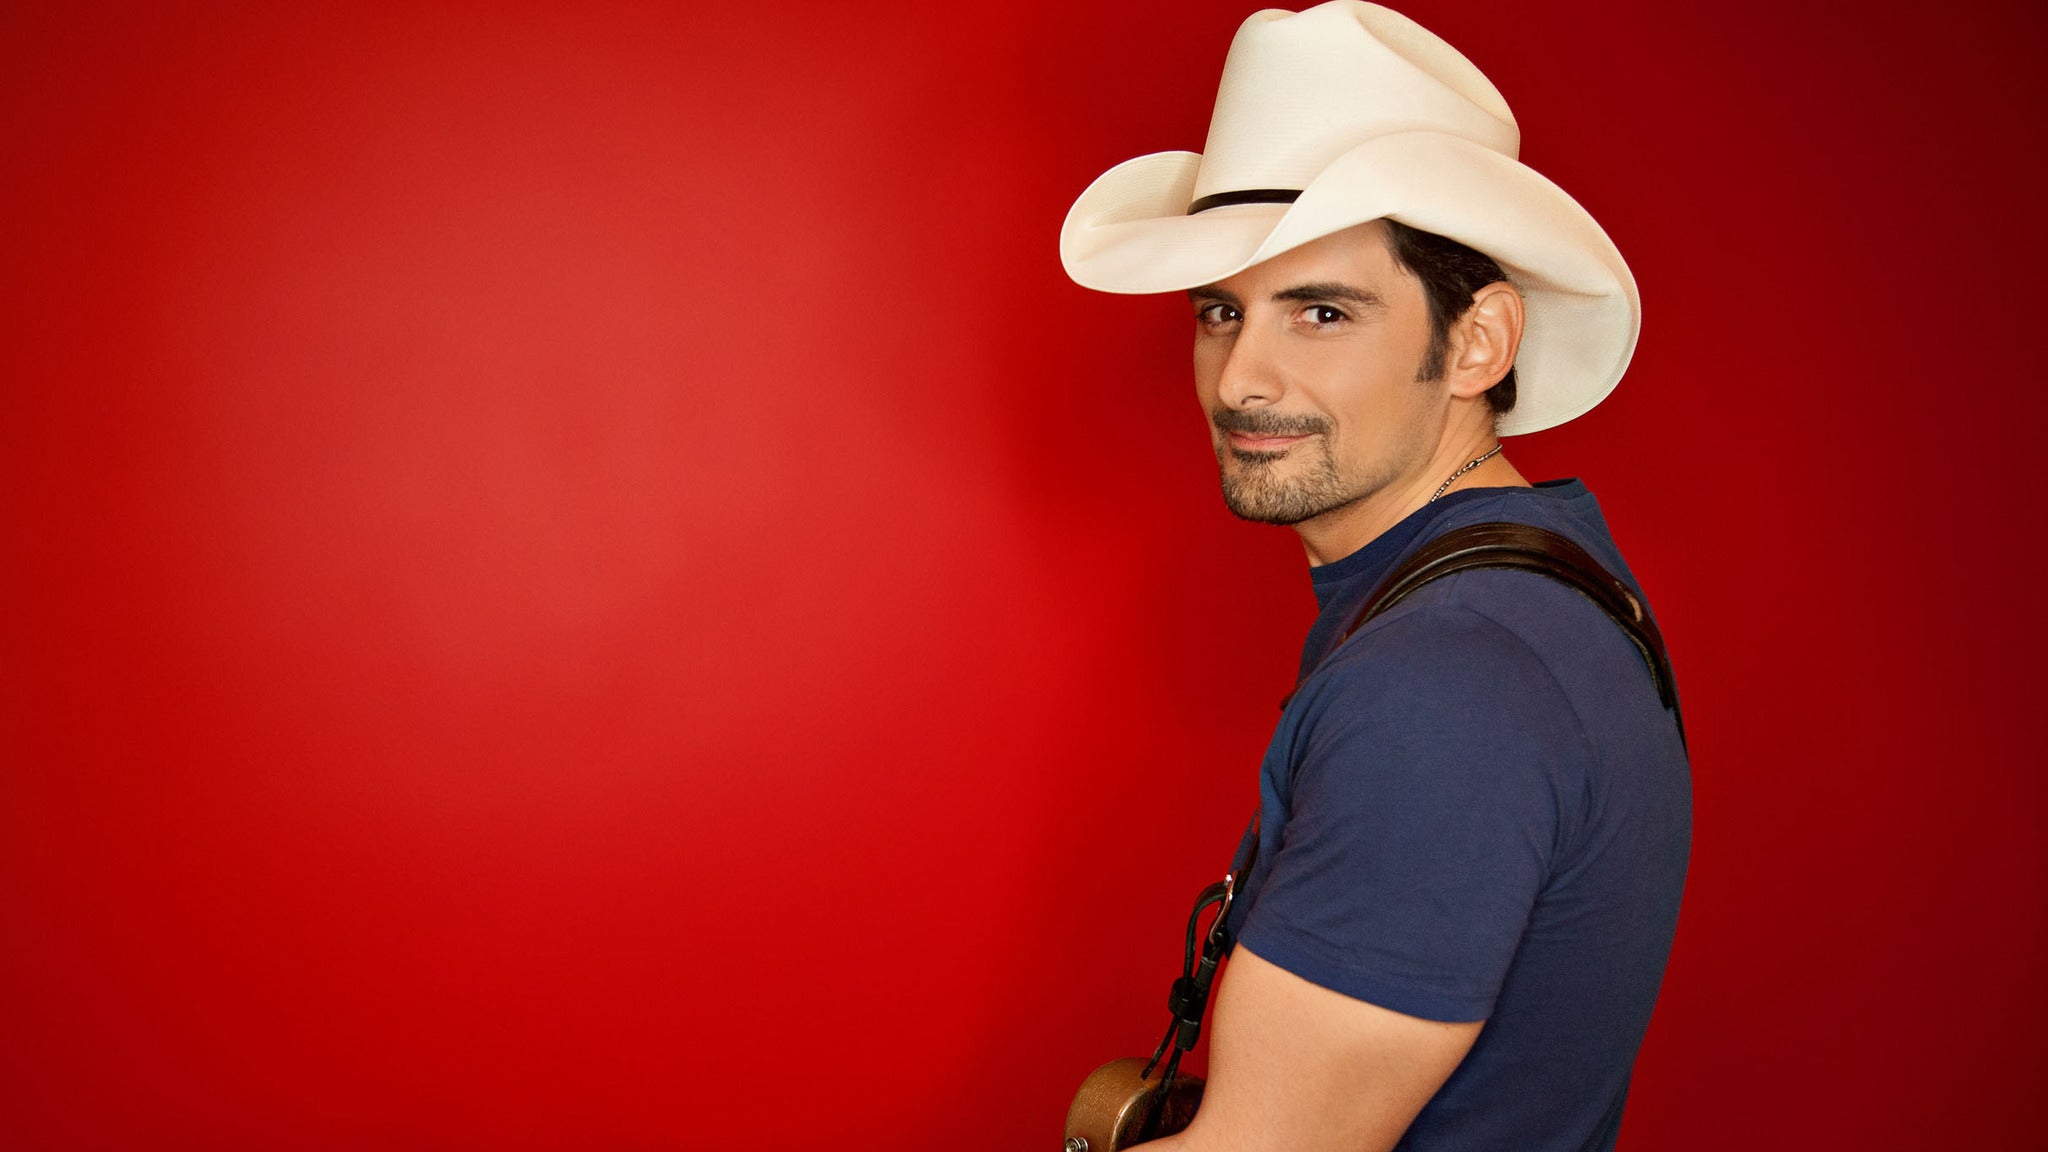 Brad Paisley at Florida Strawberry Festival